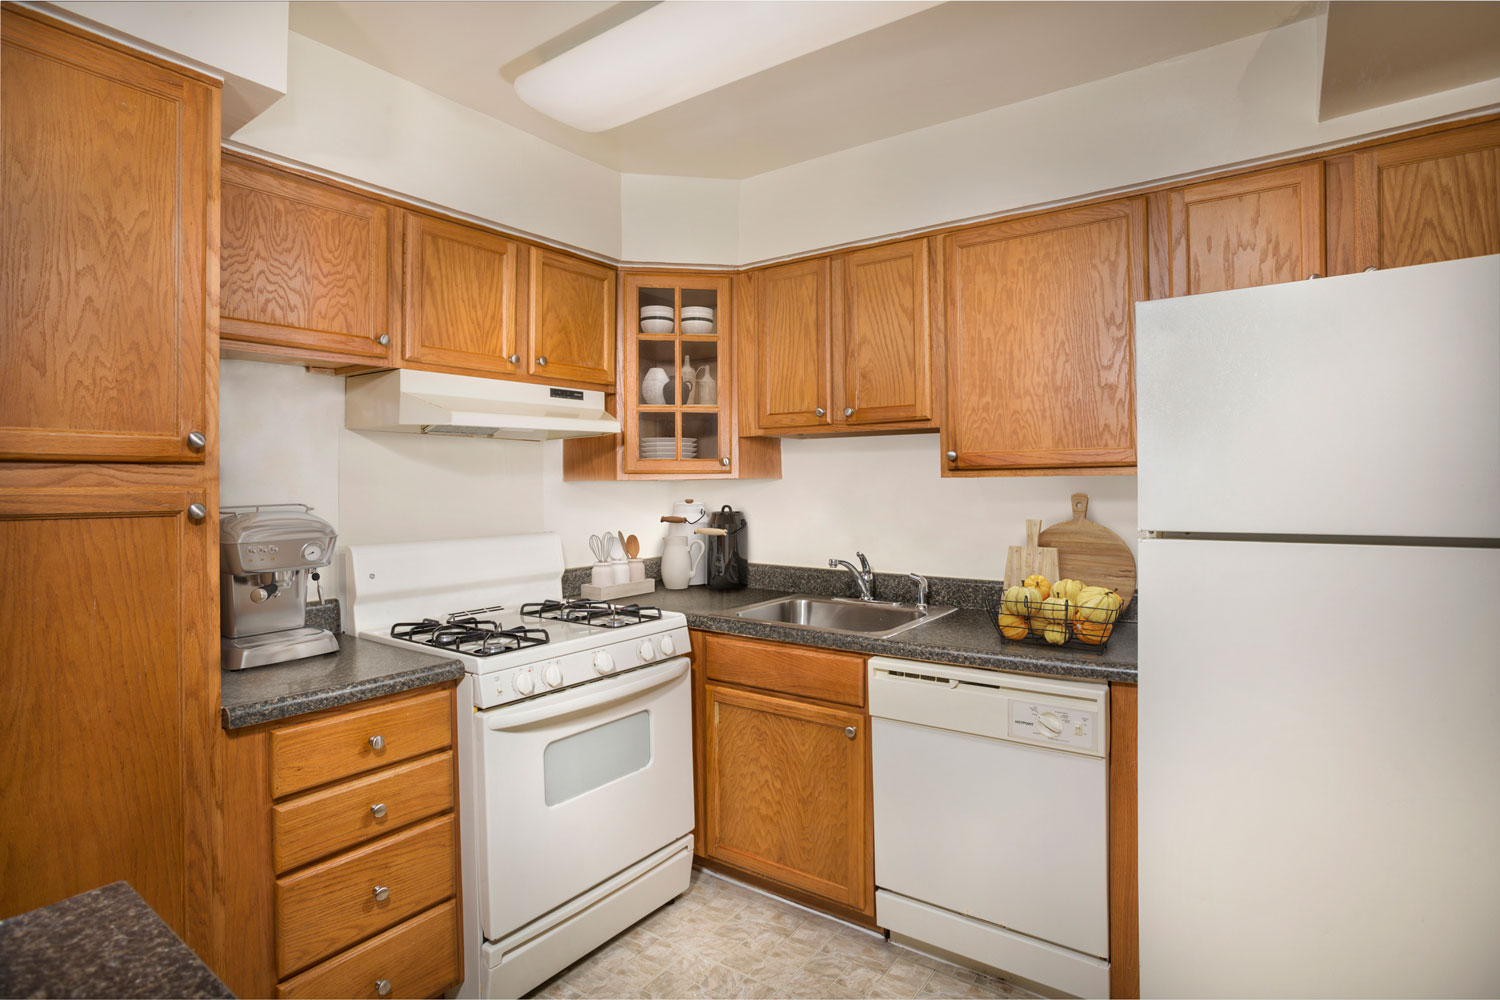 Fully-equipped kitchen with pantry at Whitehall Square Apartments in Suitland, MD